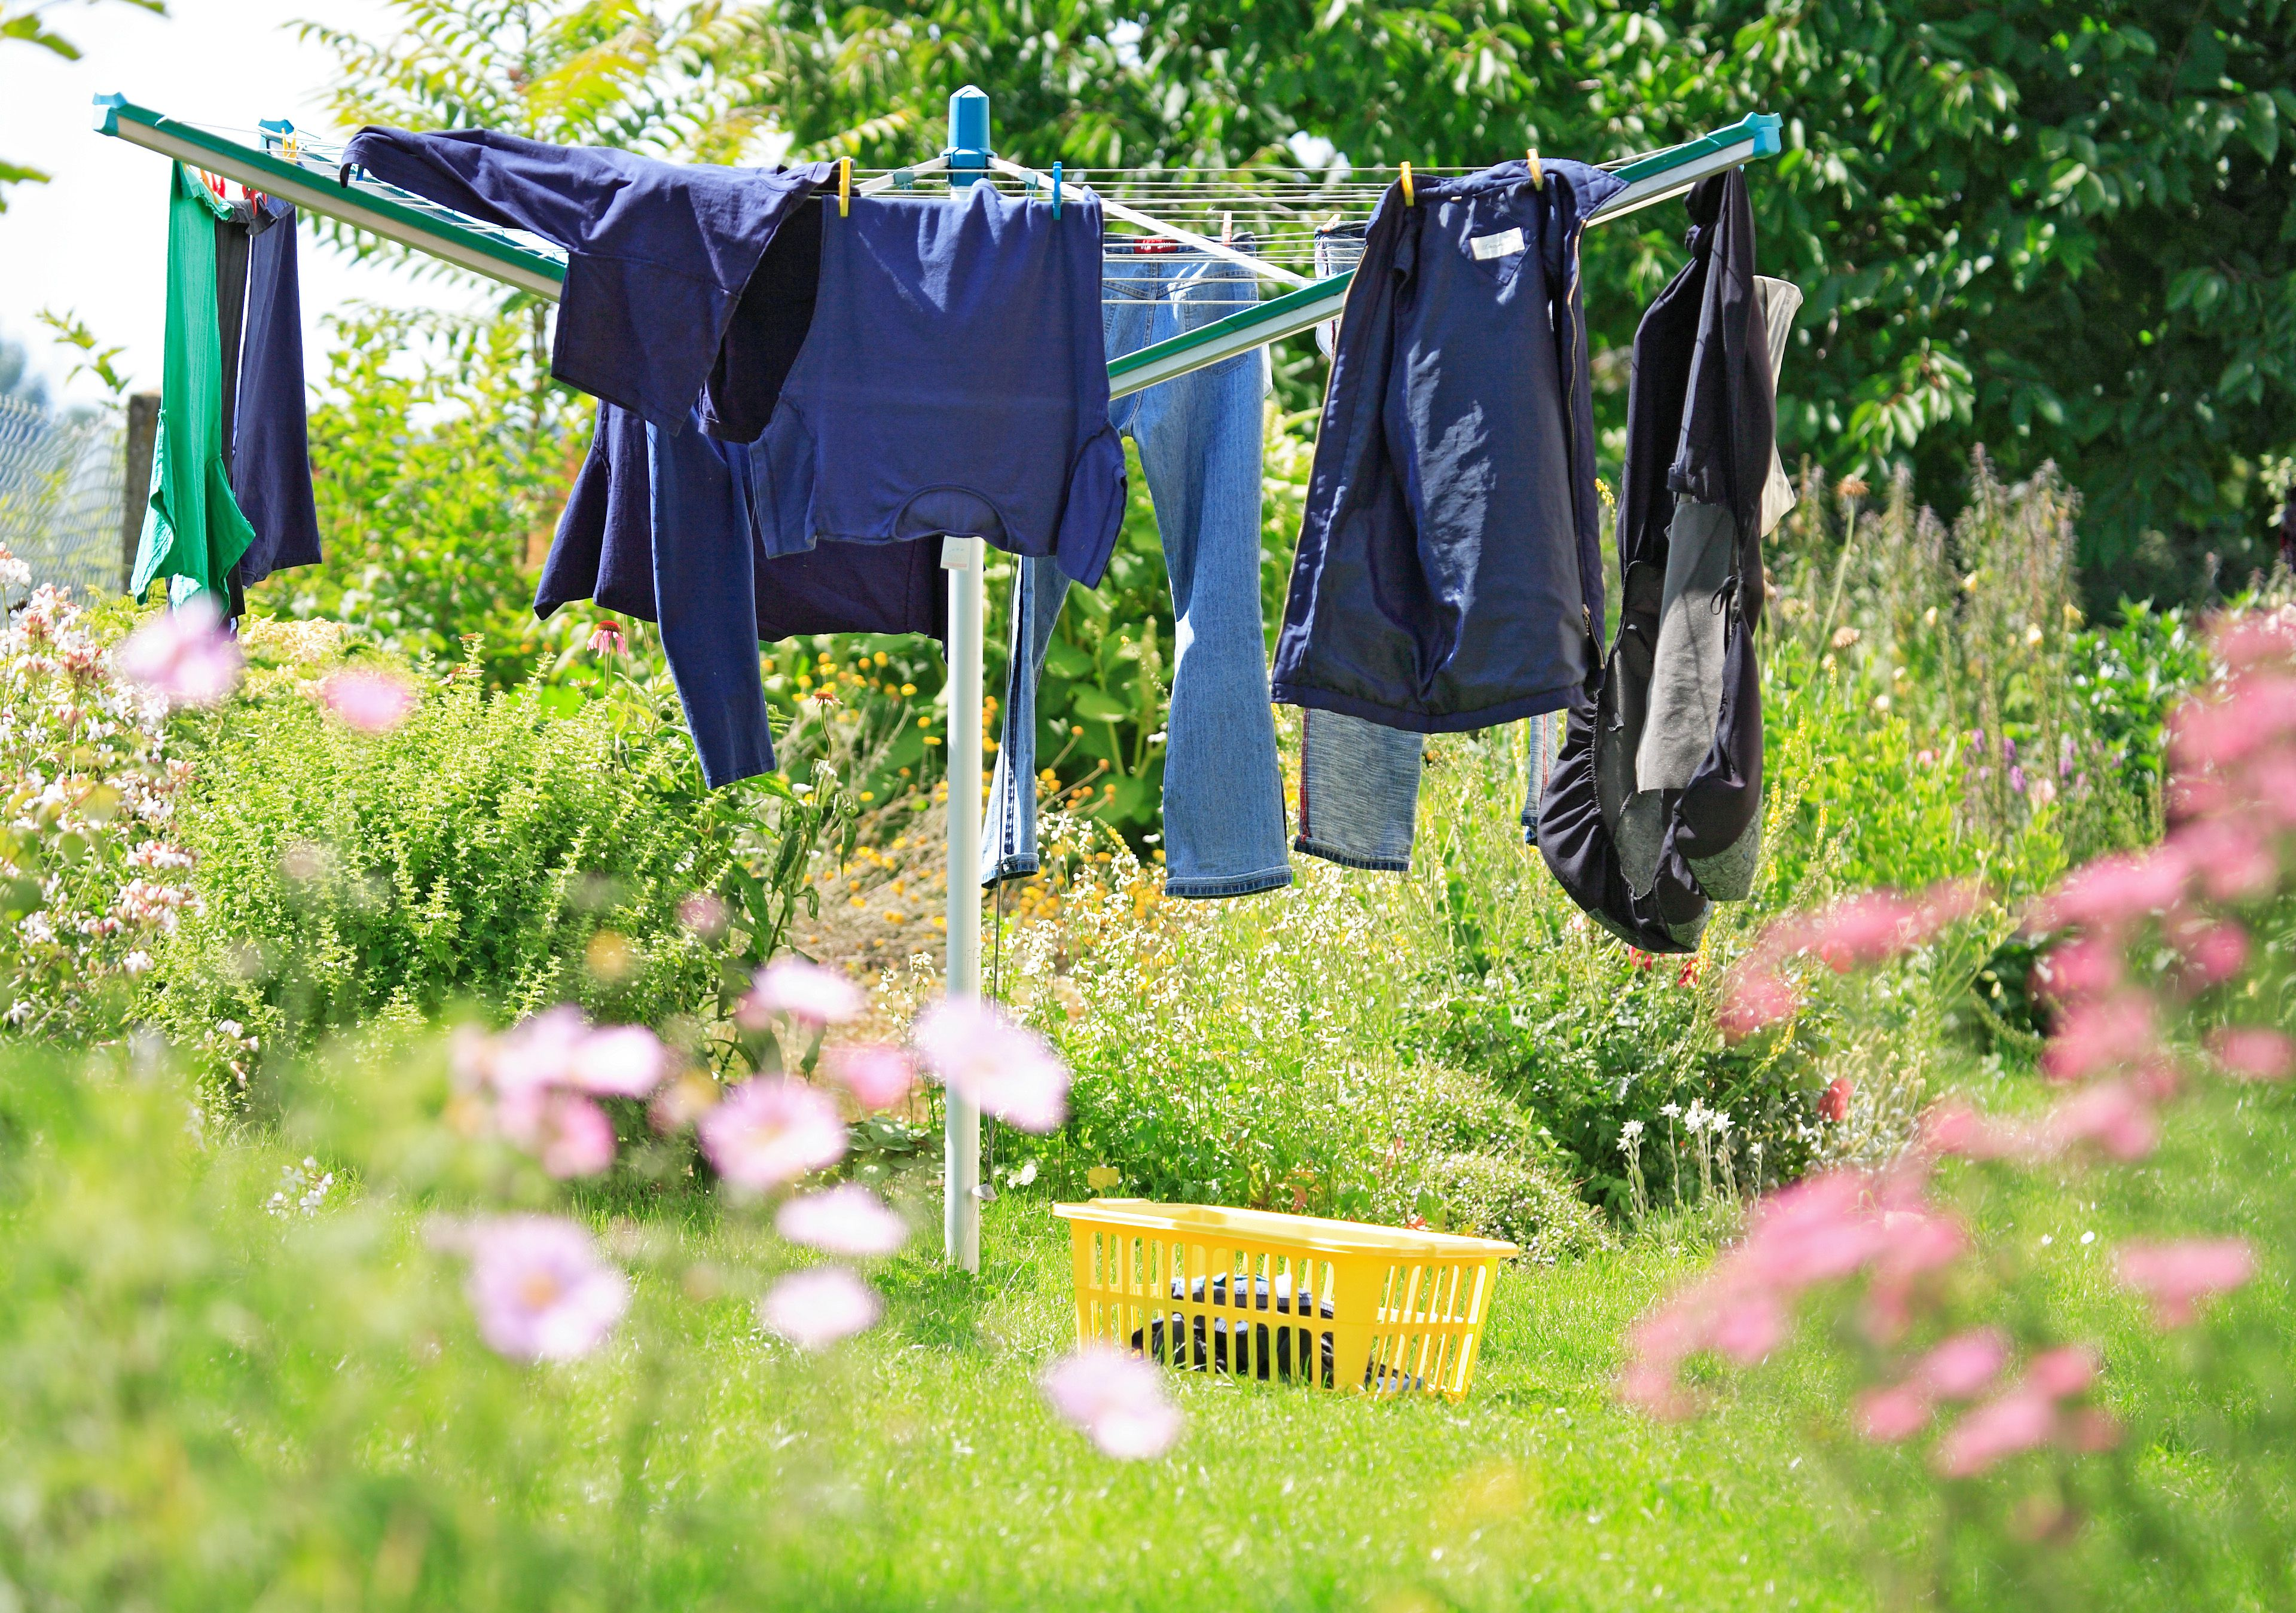 Line Drying Laundry Problems Solved